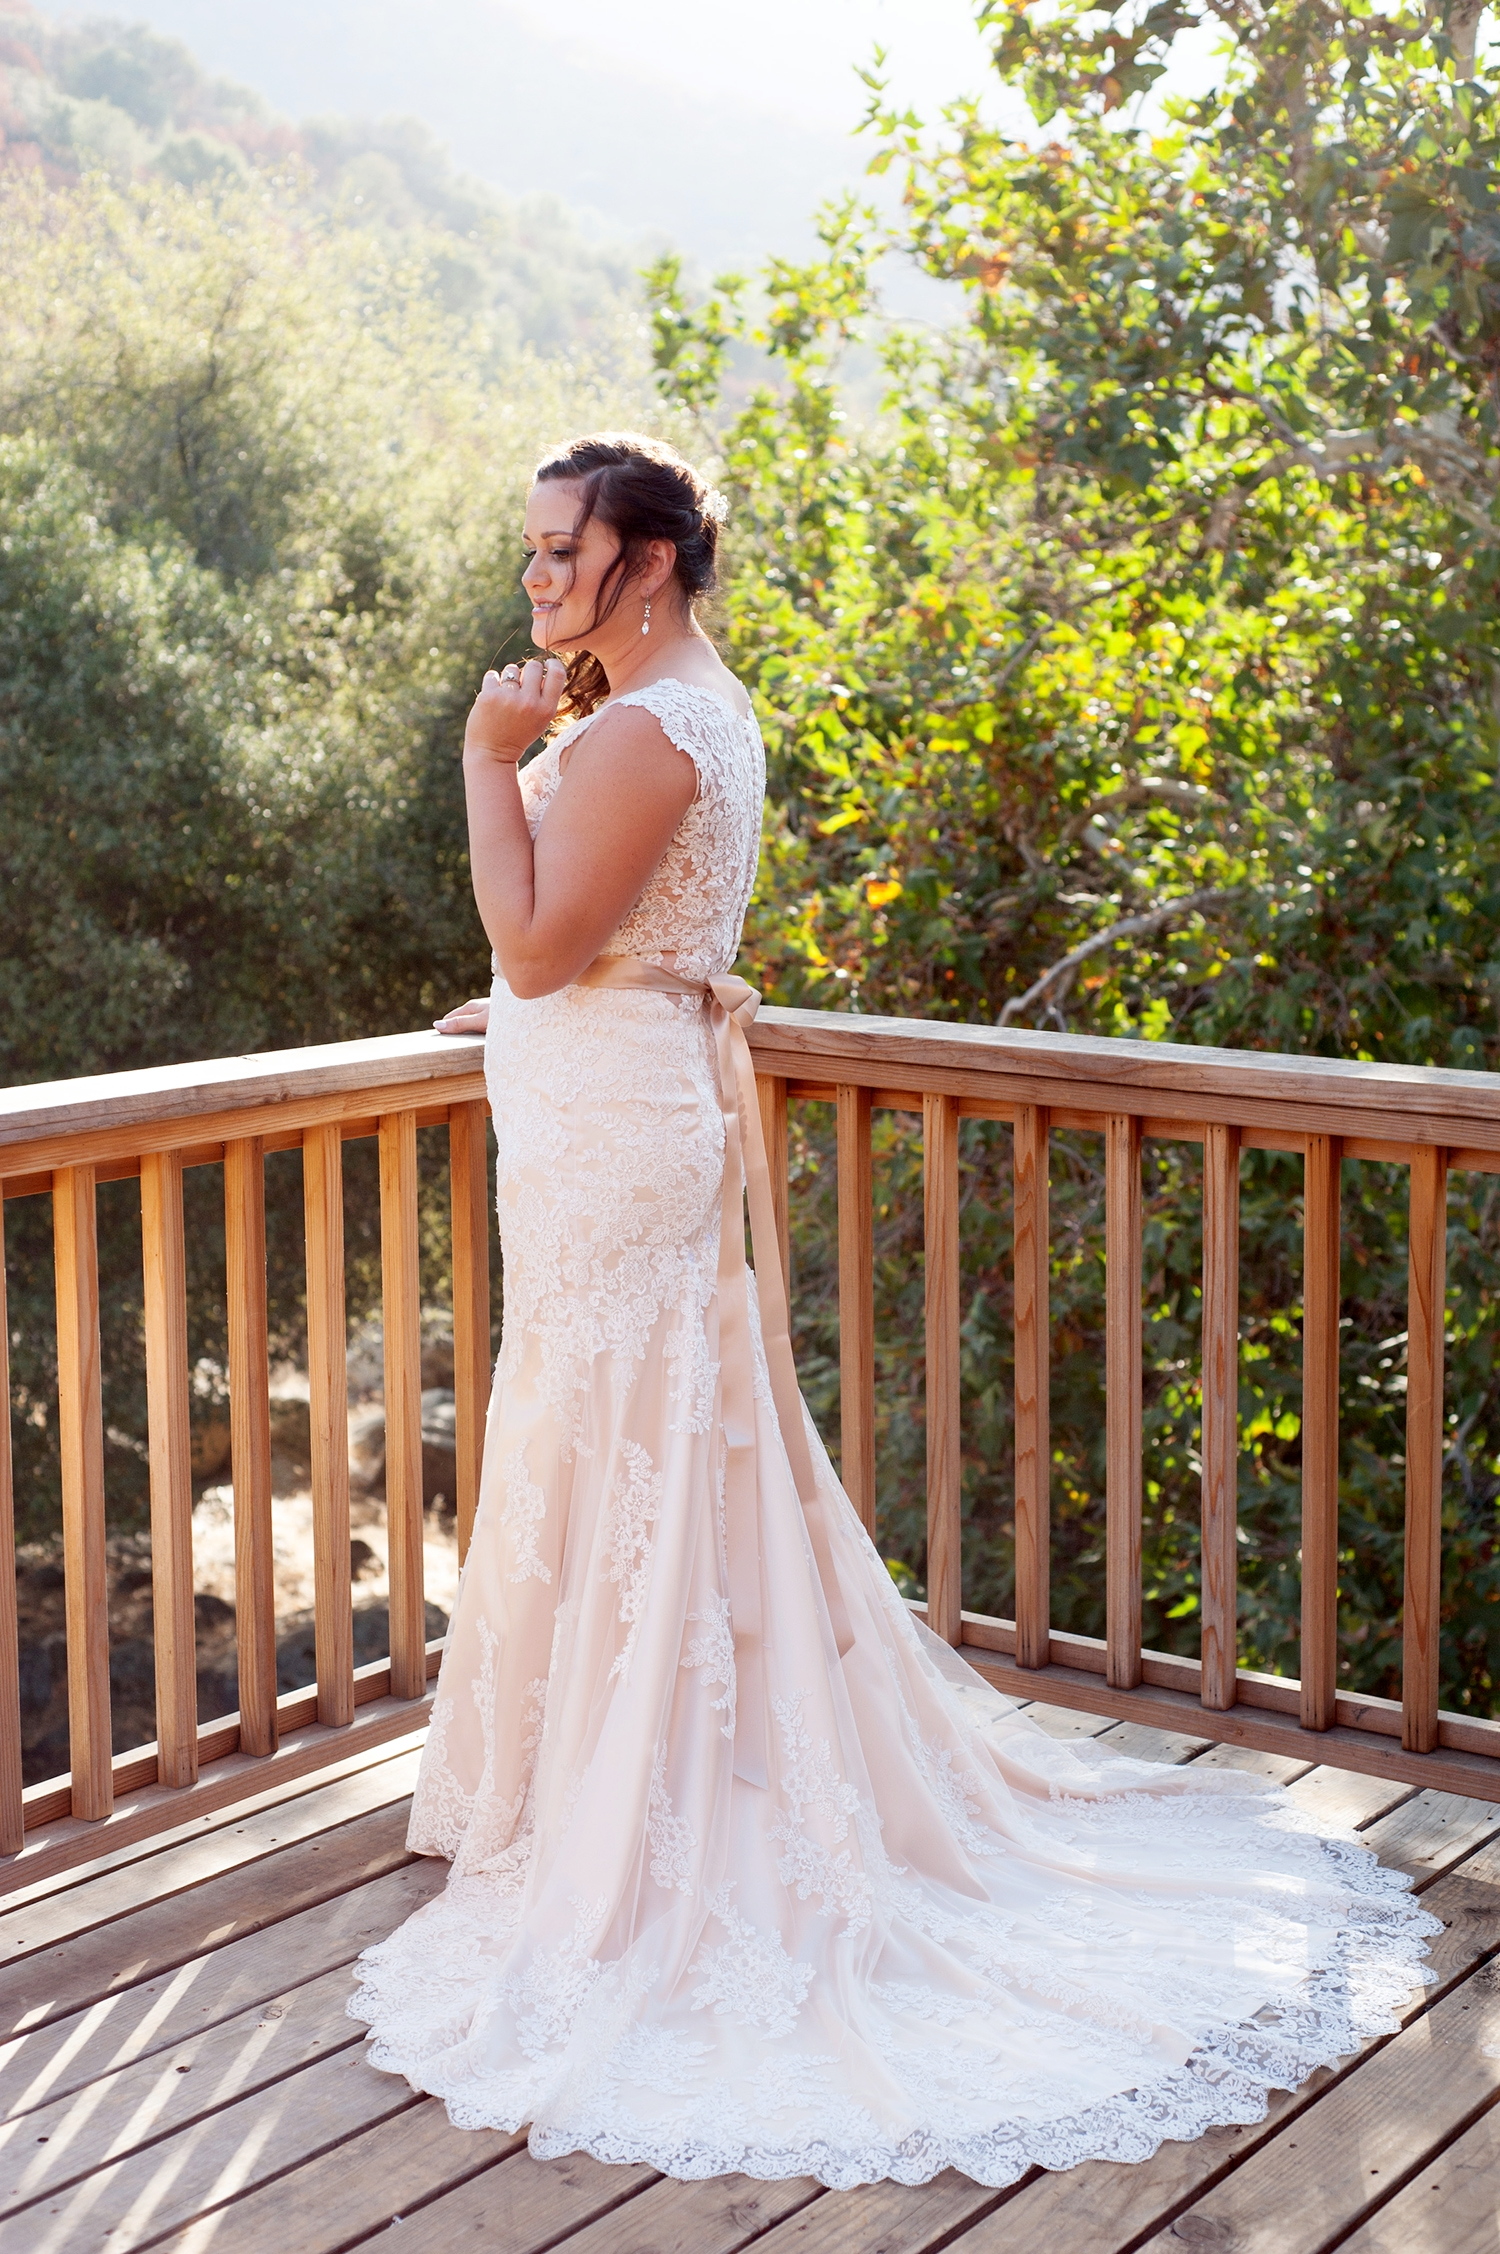 98_DSC4759Ashley+Lace-Wedding-in-Three-Rivers-California.jpg